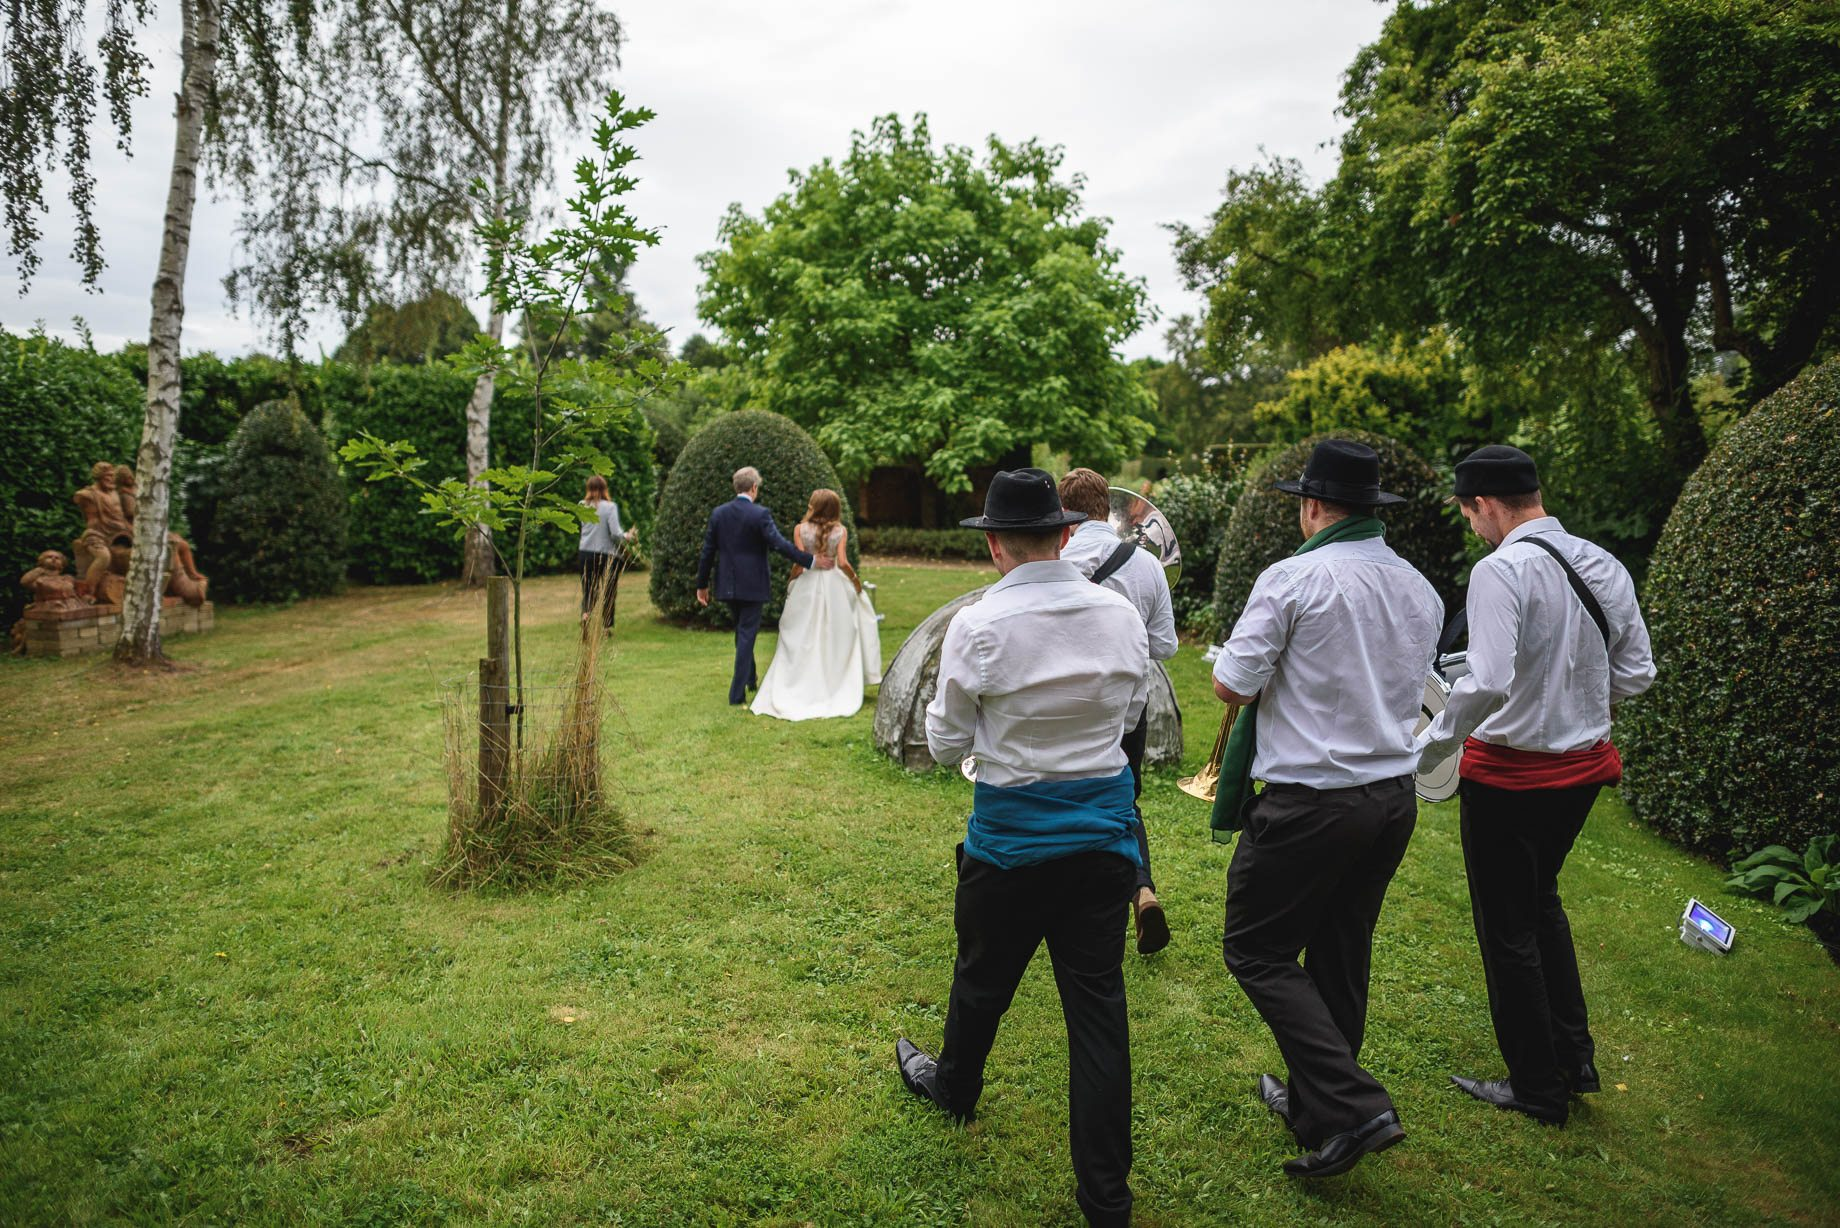 surrey-wedding-photography-guy-collier-photography-claire-and-tom-113-of-227